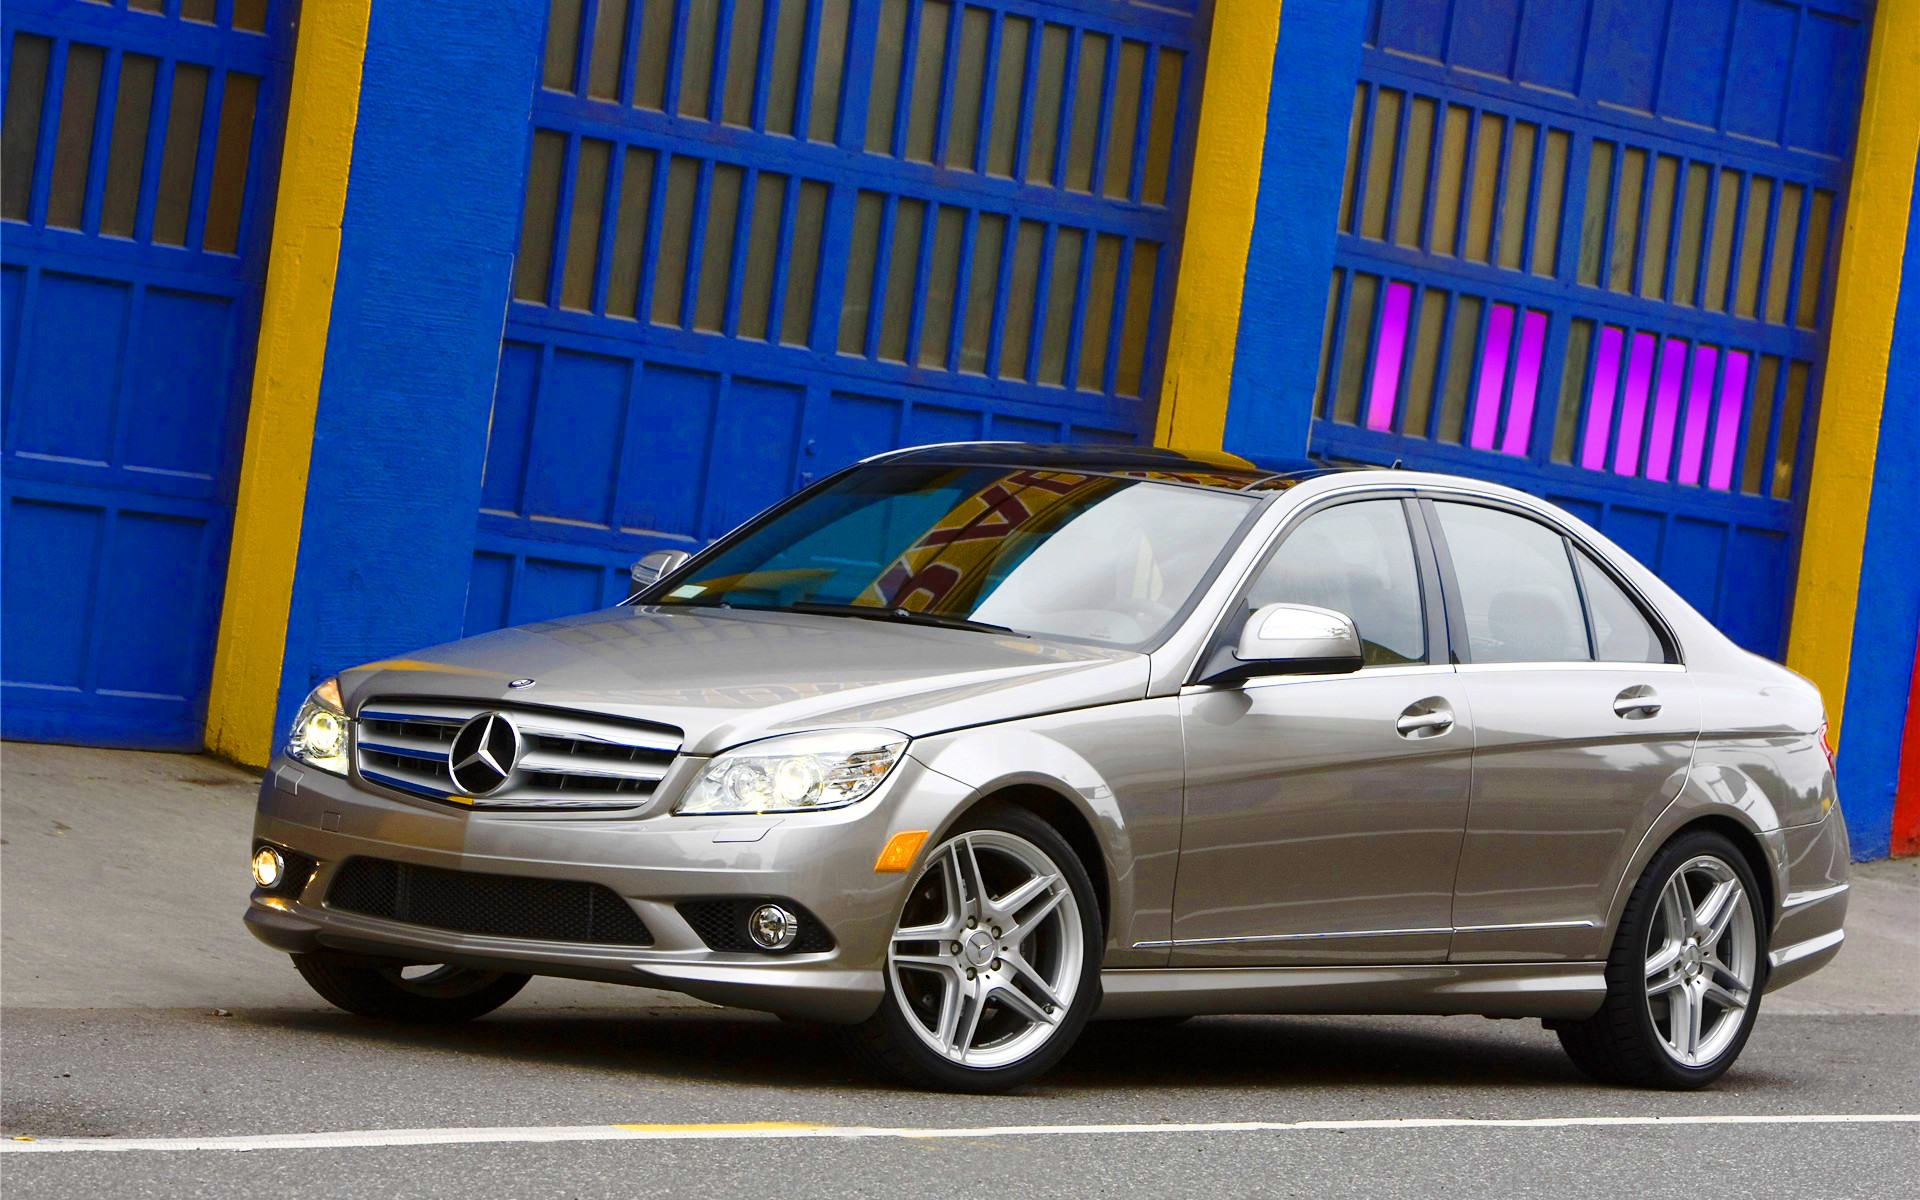 ... 2010 Mercedes-Benz C-Class | BenzInsider.com - A Mercedes-Benz Fan